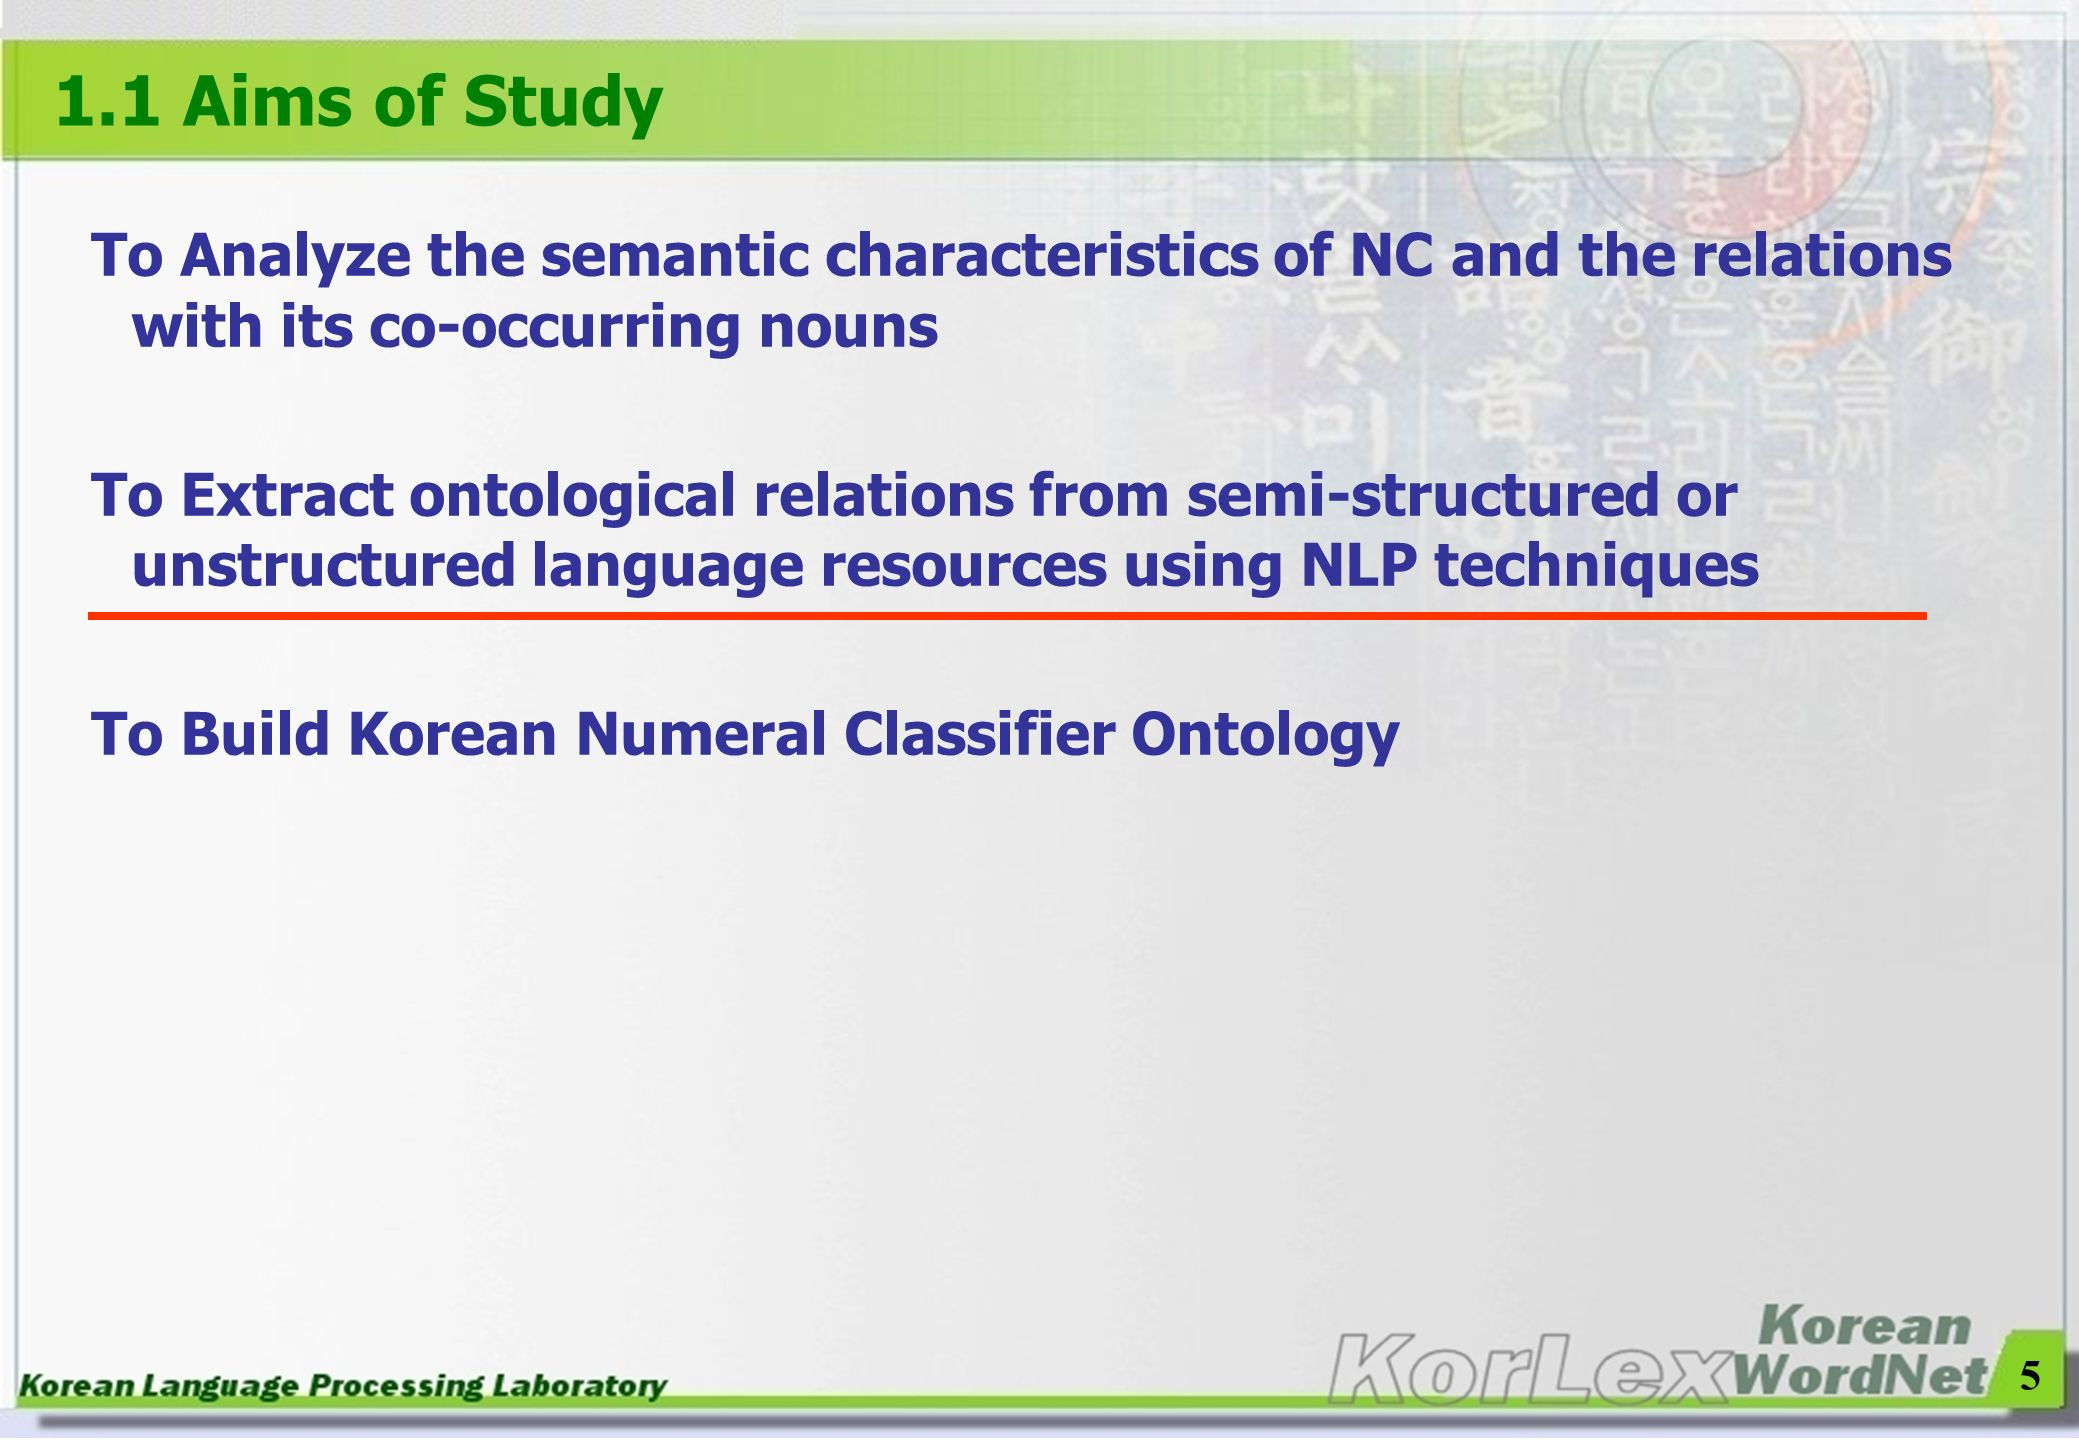 1.1 Aims of Study To Analyze the semantic characteristics of NC and the relations with its co-occurring nouns.